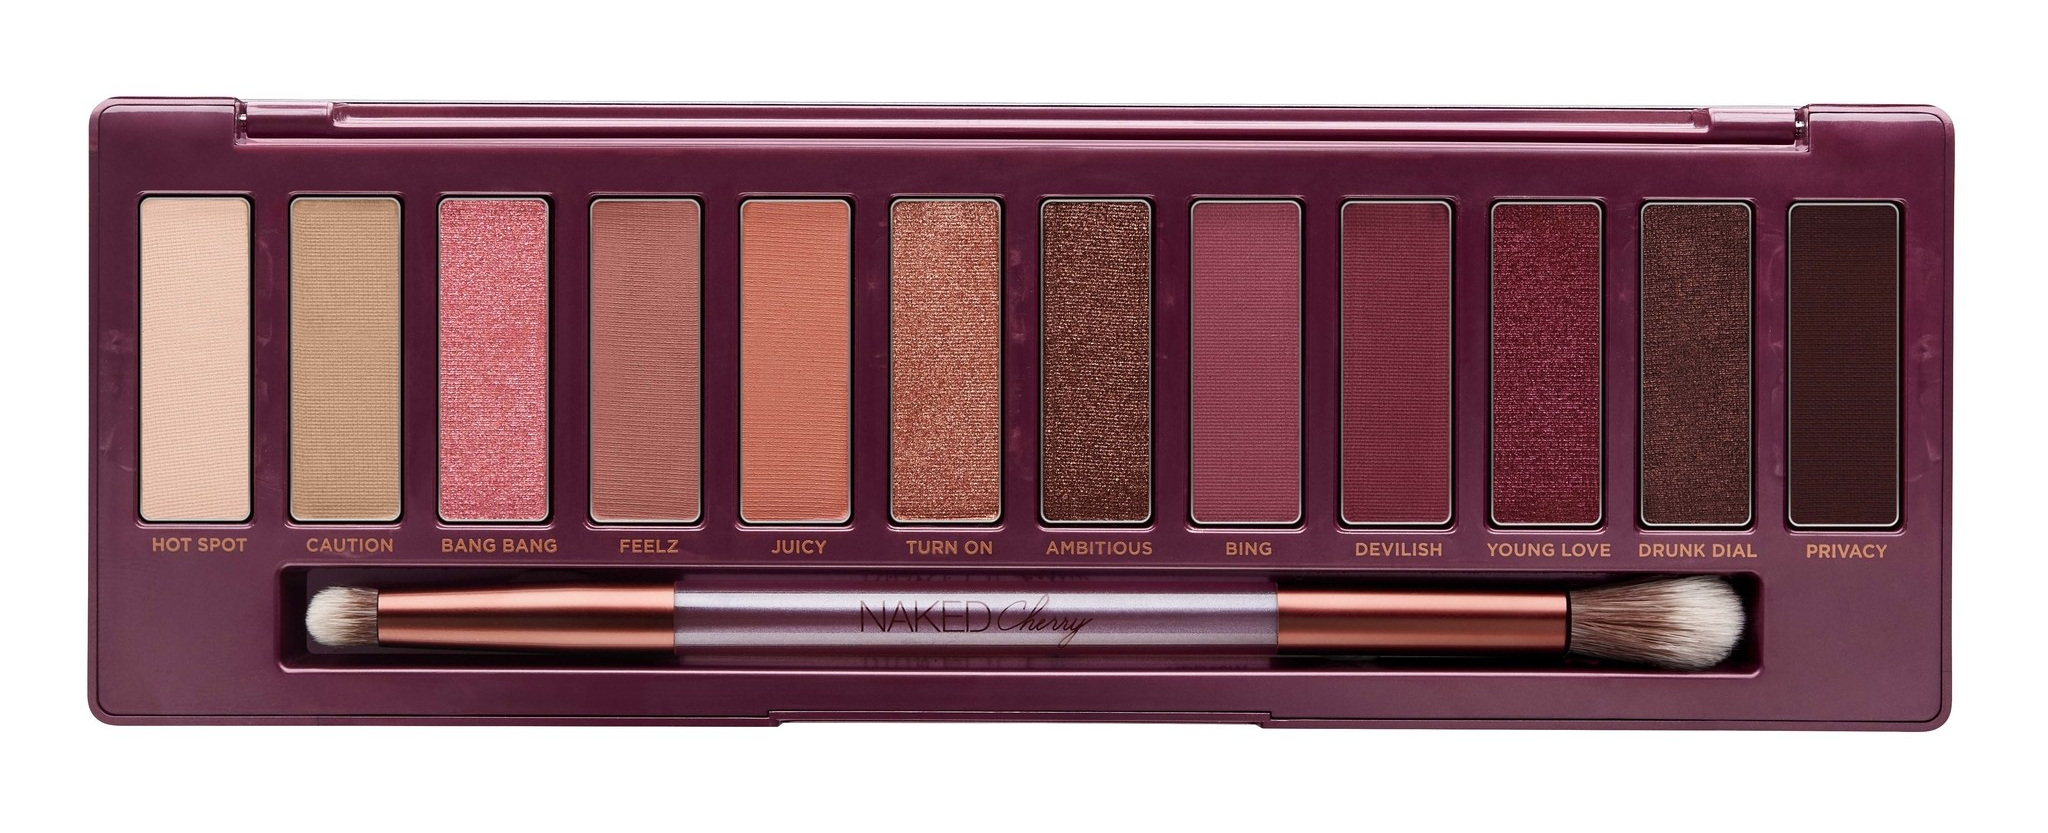 Urban Decay Naked Cherry Palette Collection - Naked Cherry Palette - Anteprima, info, prezzo, data di uscita, review, recensione, swatches